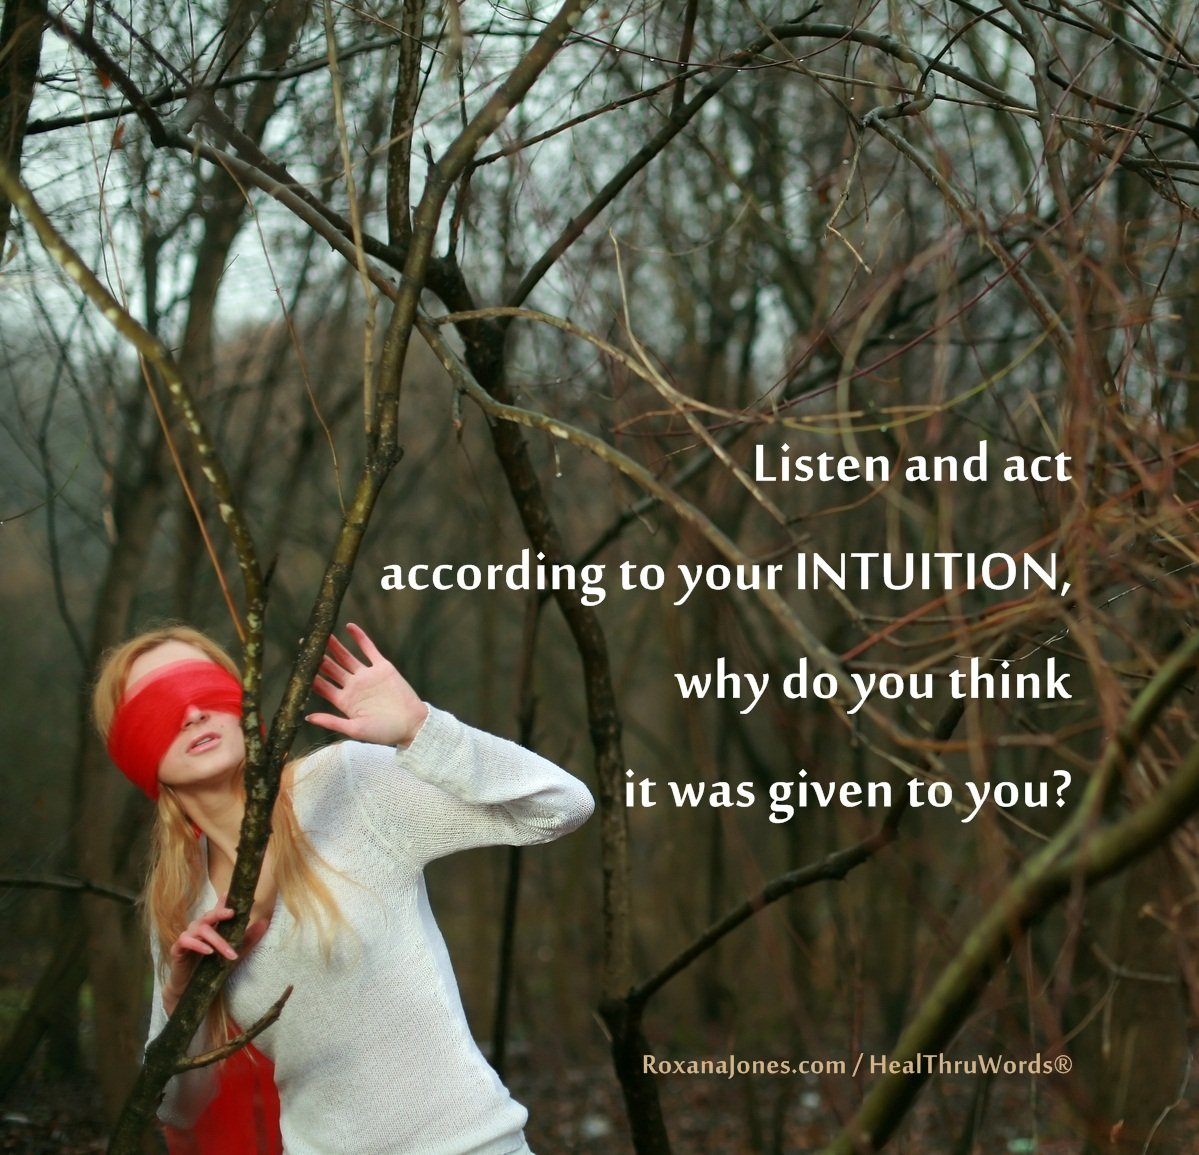 Inspirational Image: Expand your Intuition